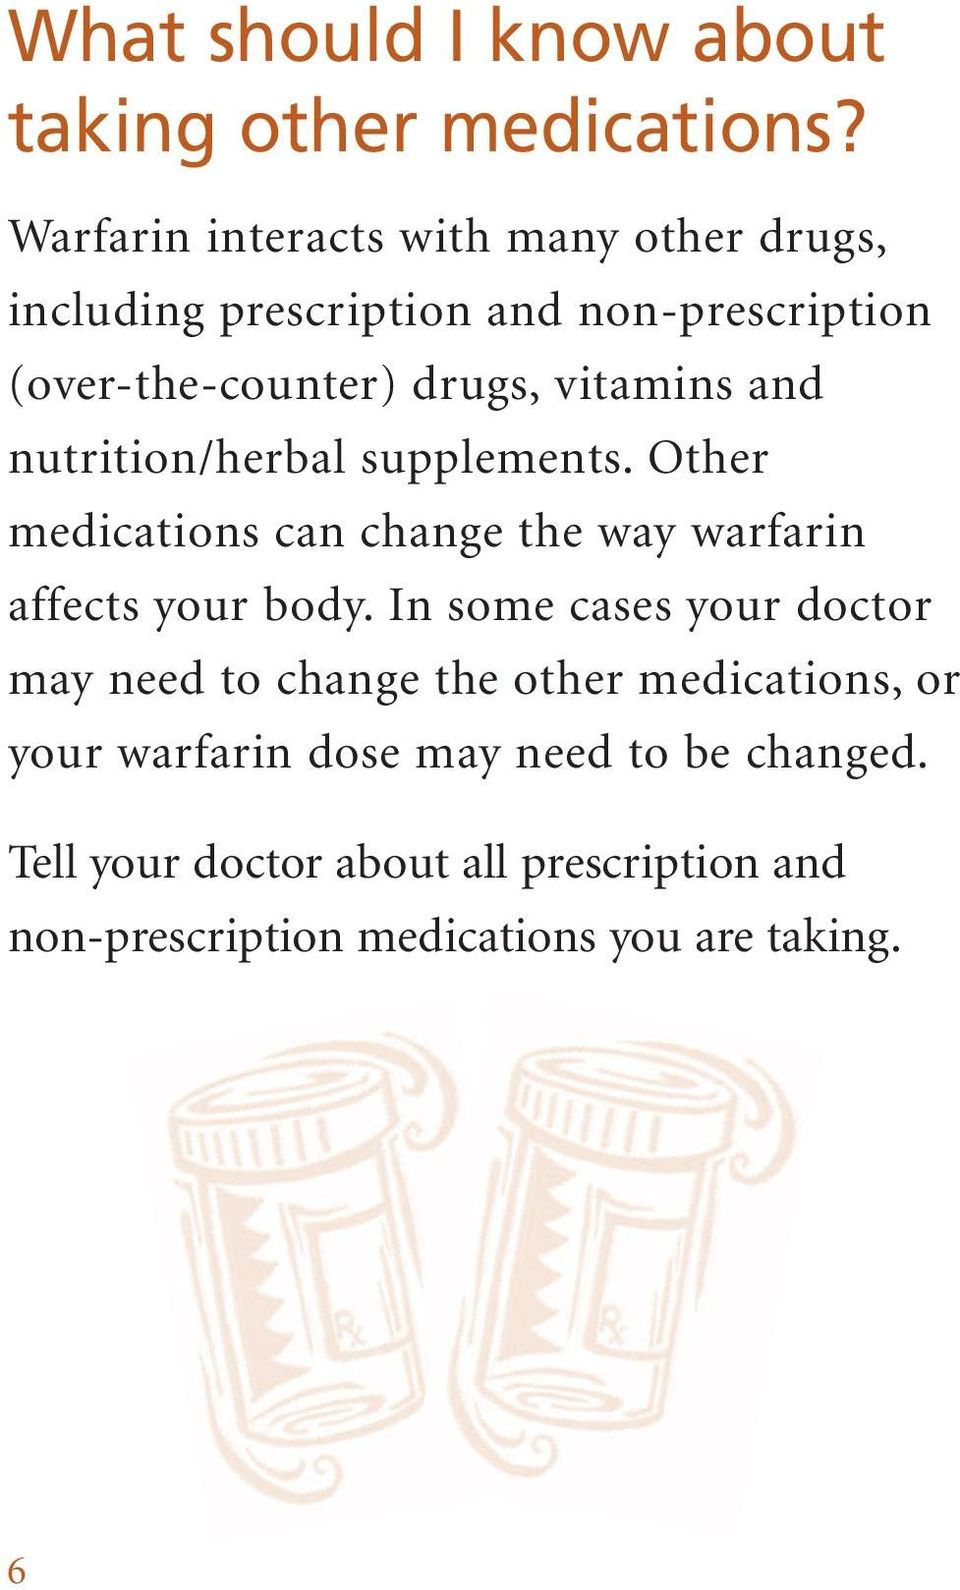 vitamins and nutrition/herbal supplements. Other medications can change the way warfarin affects your body.